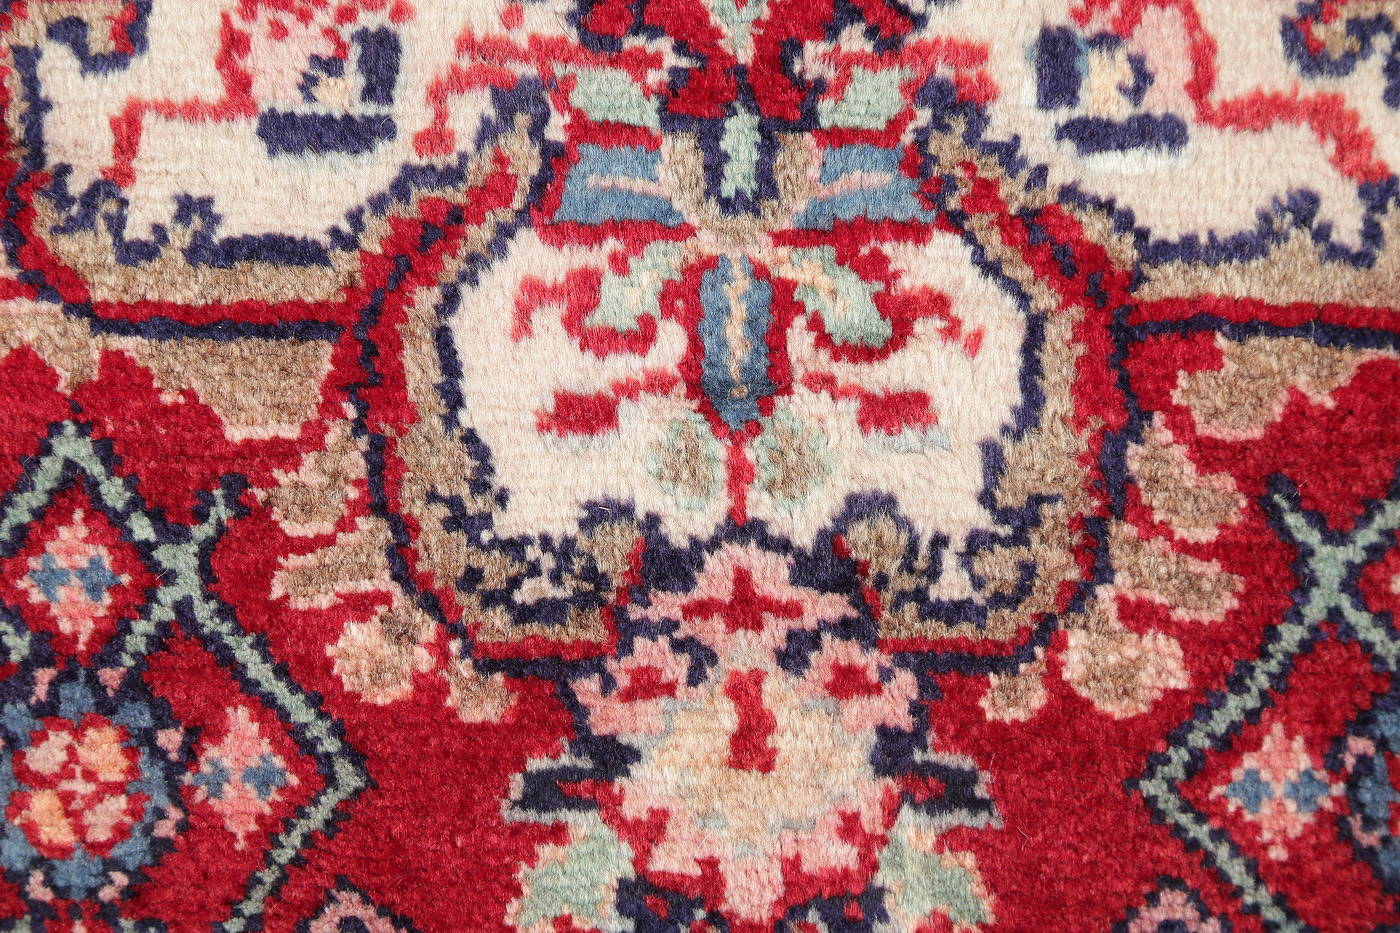 Hand-Knotted Red Geometric Malayer Hamedan Persian Runner Rug Wool 3x6